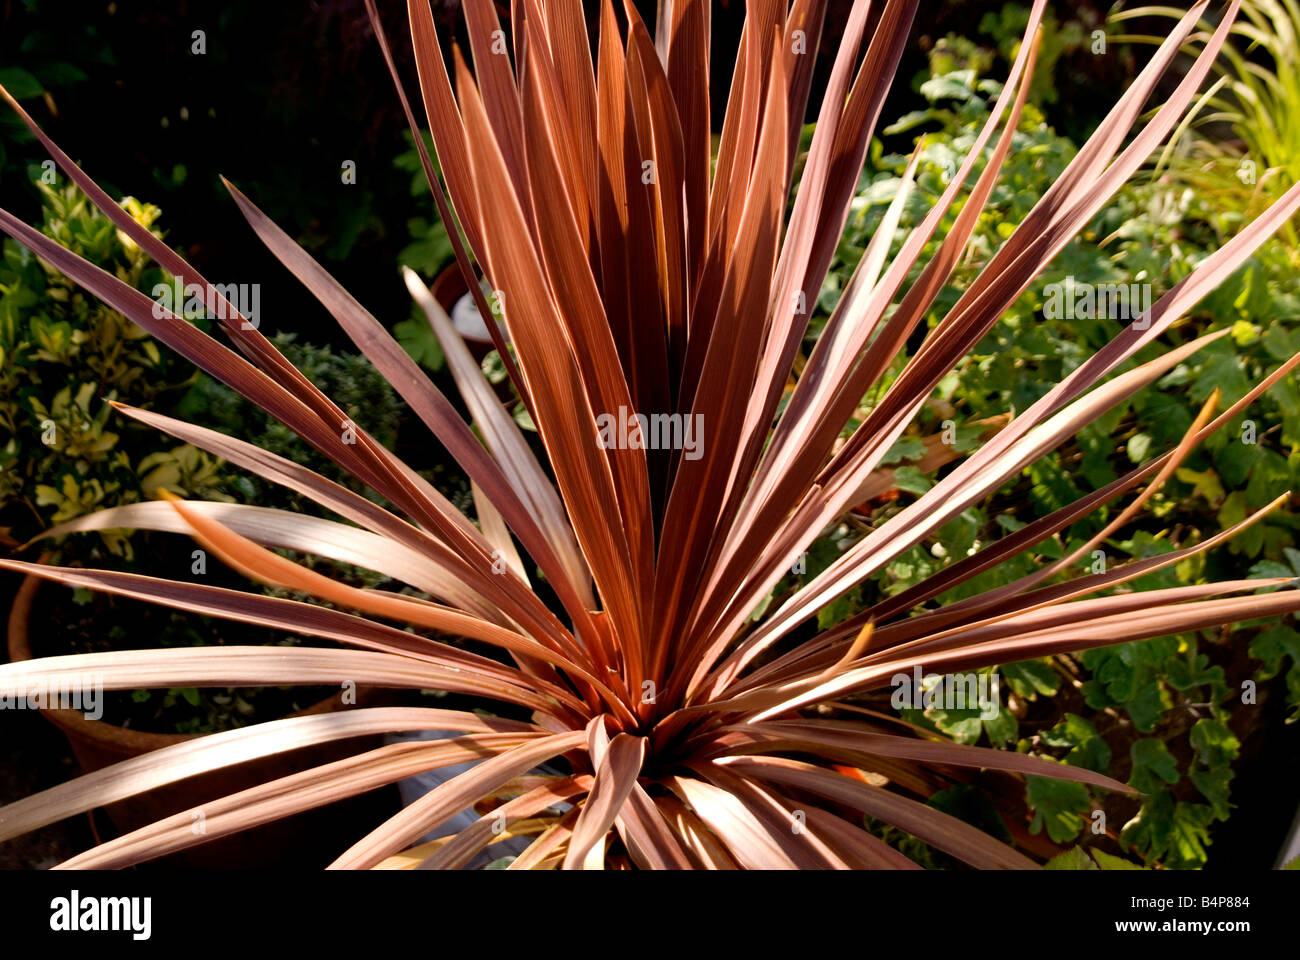 Brown palm tree with green leaves in the background - Stock Image